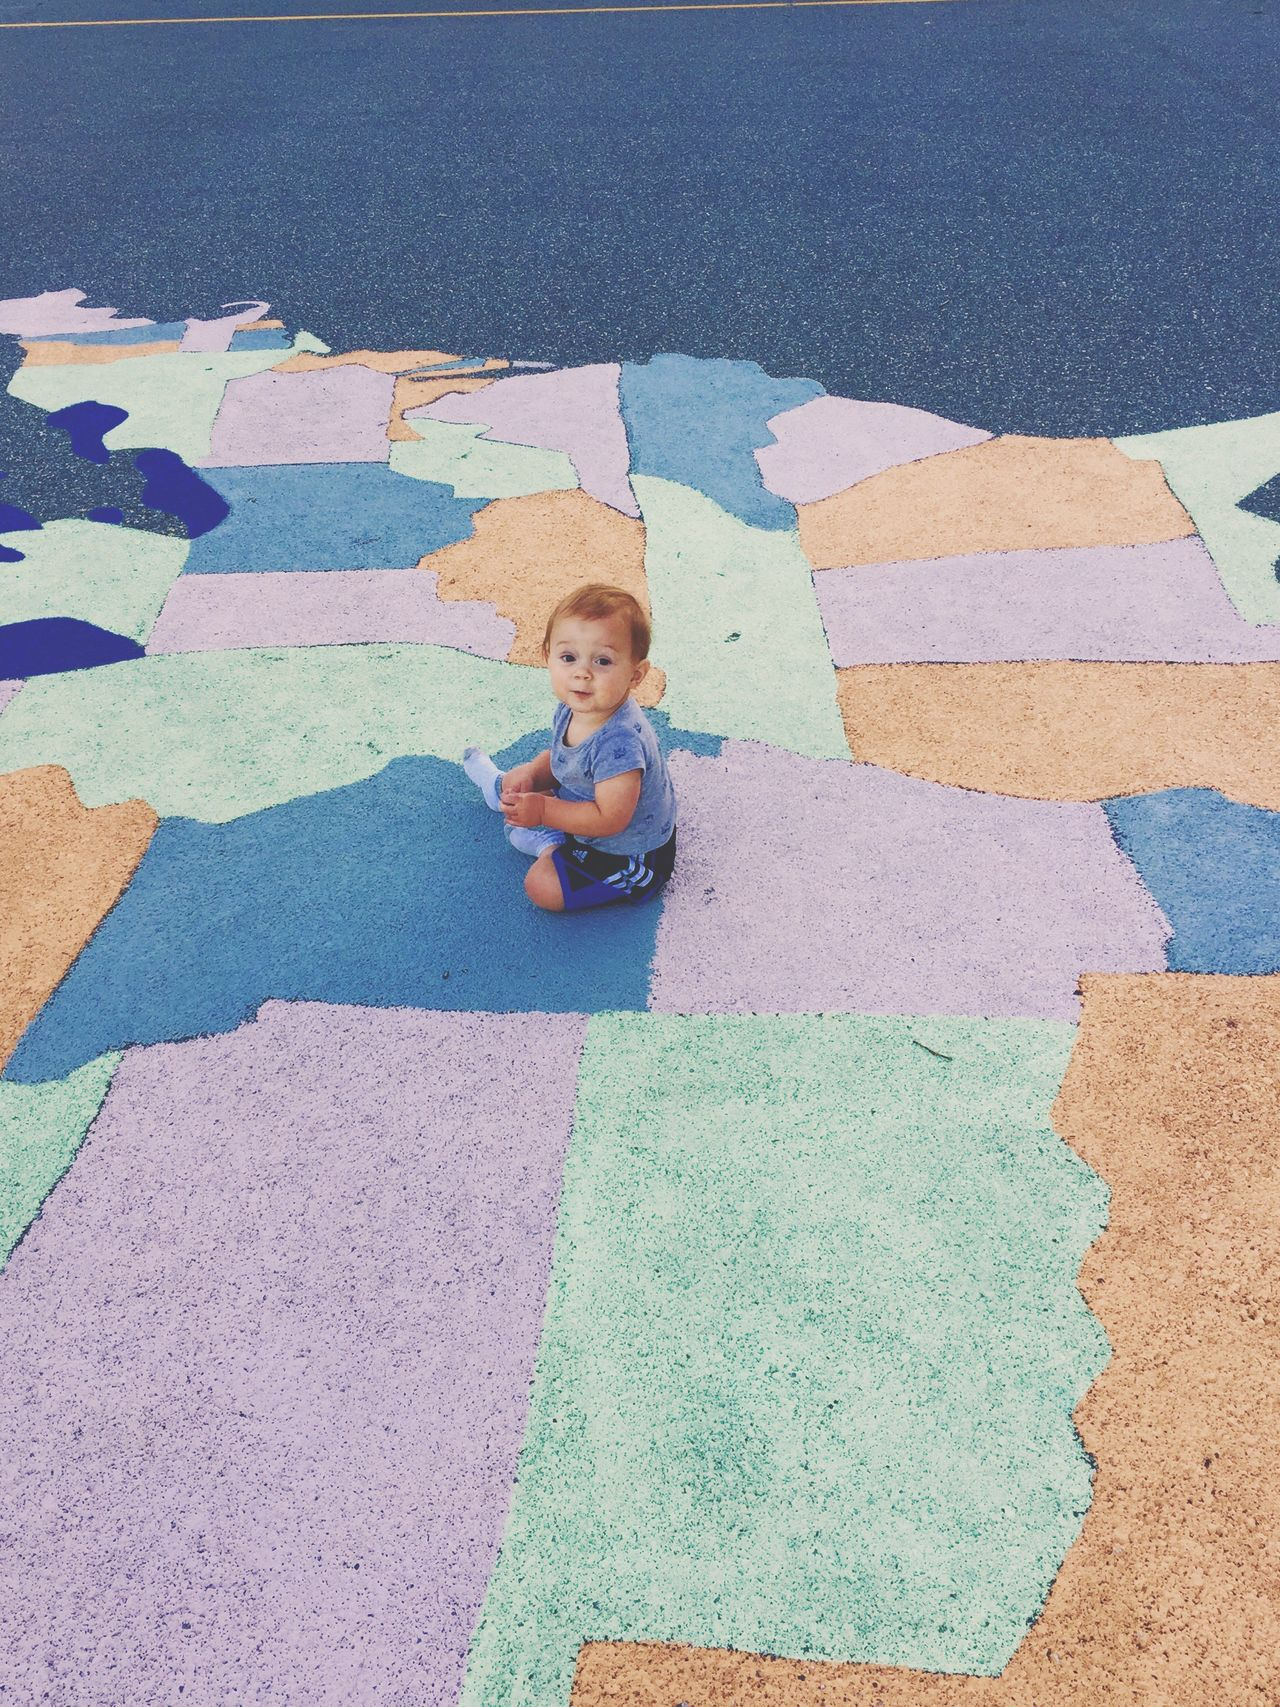 State States Multi Colored United States Paint Park Baby Babyboy Feel The Journey Roadtrip Planning Ahead